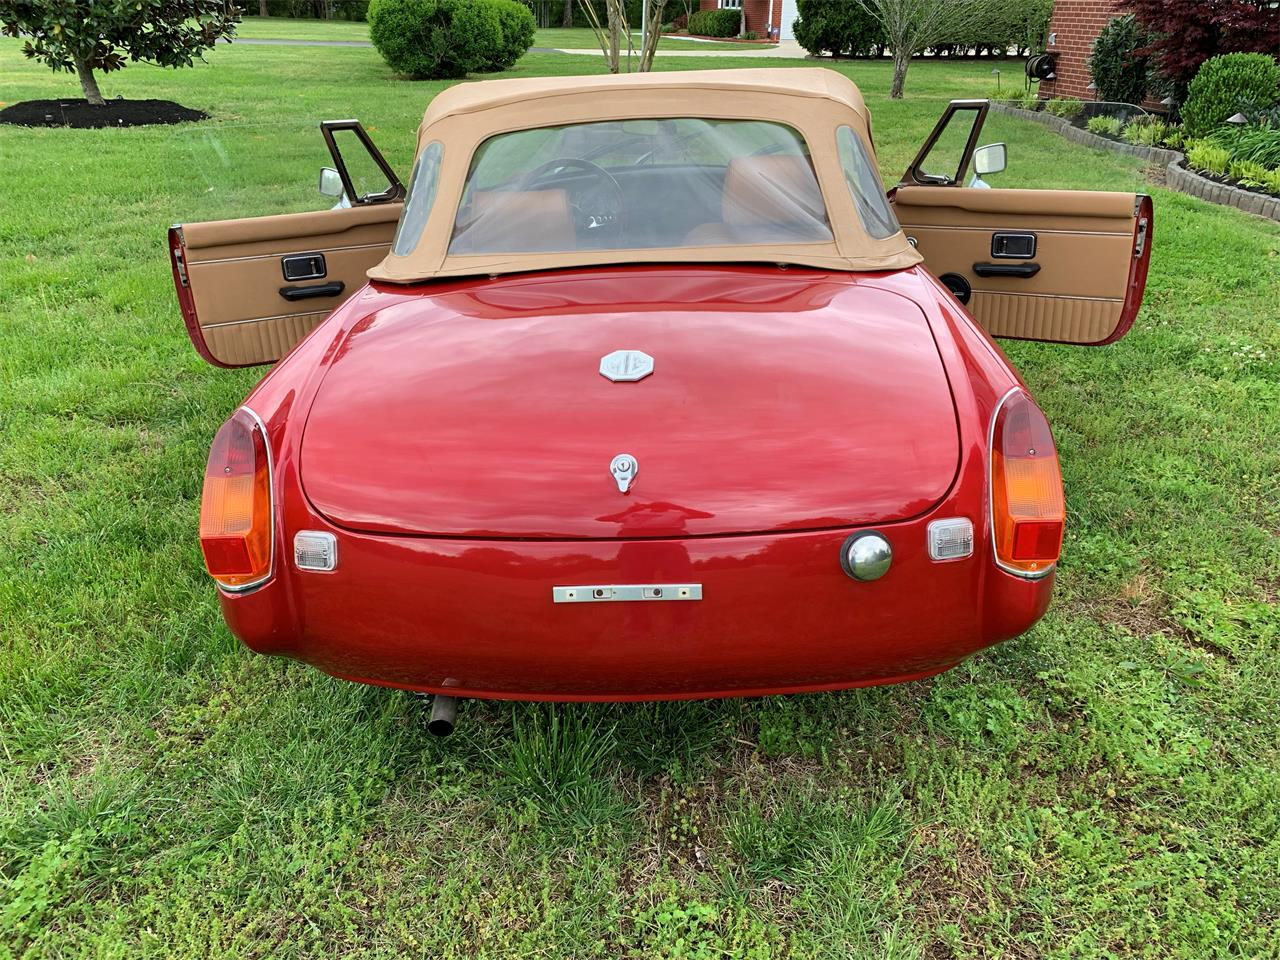 Large Picture of 1975 MG MGB Offered by a Private Seller - Q1U3